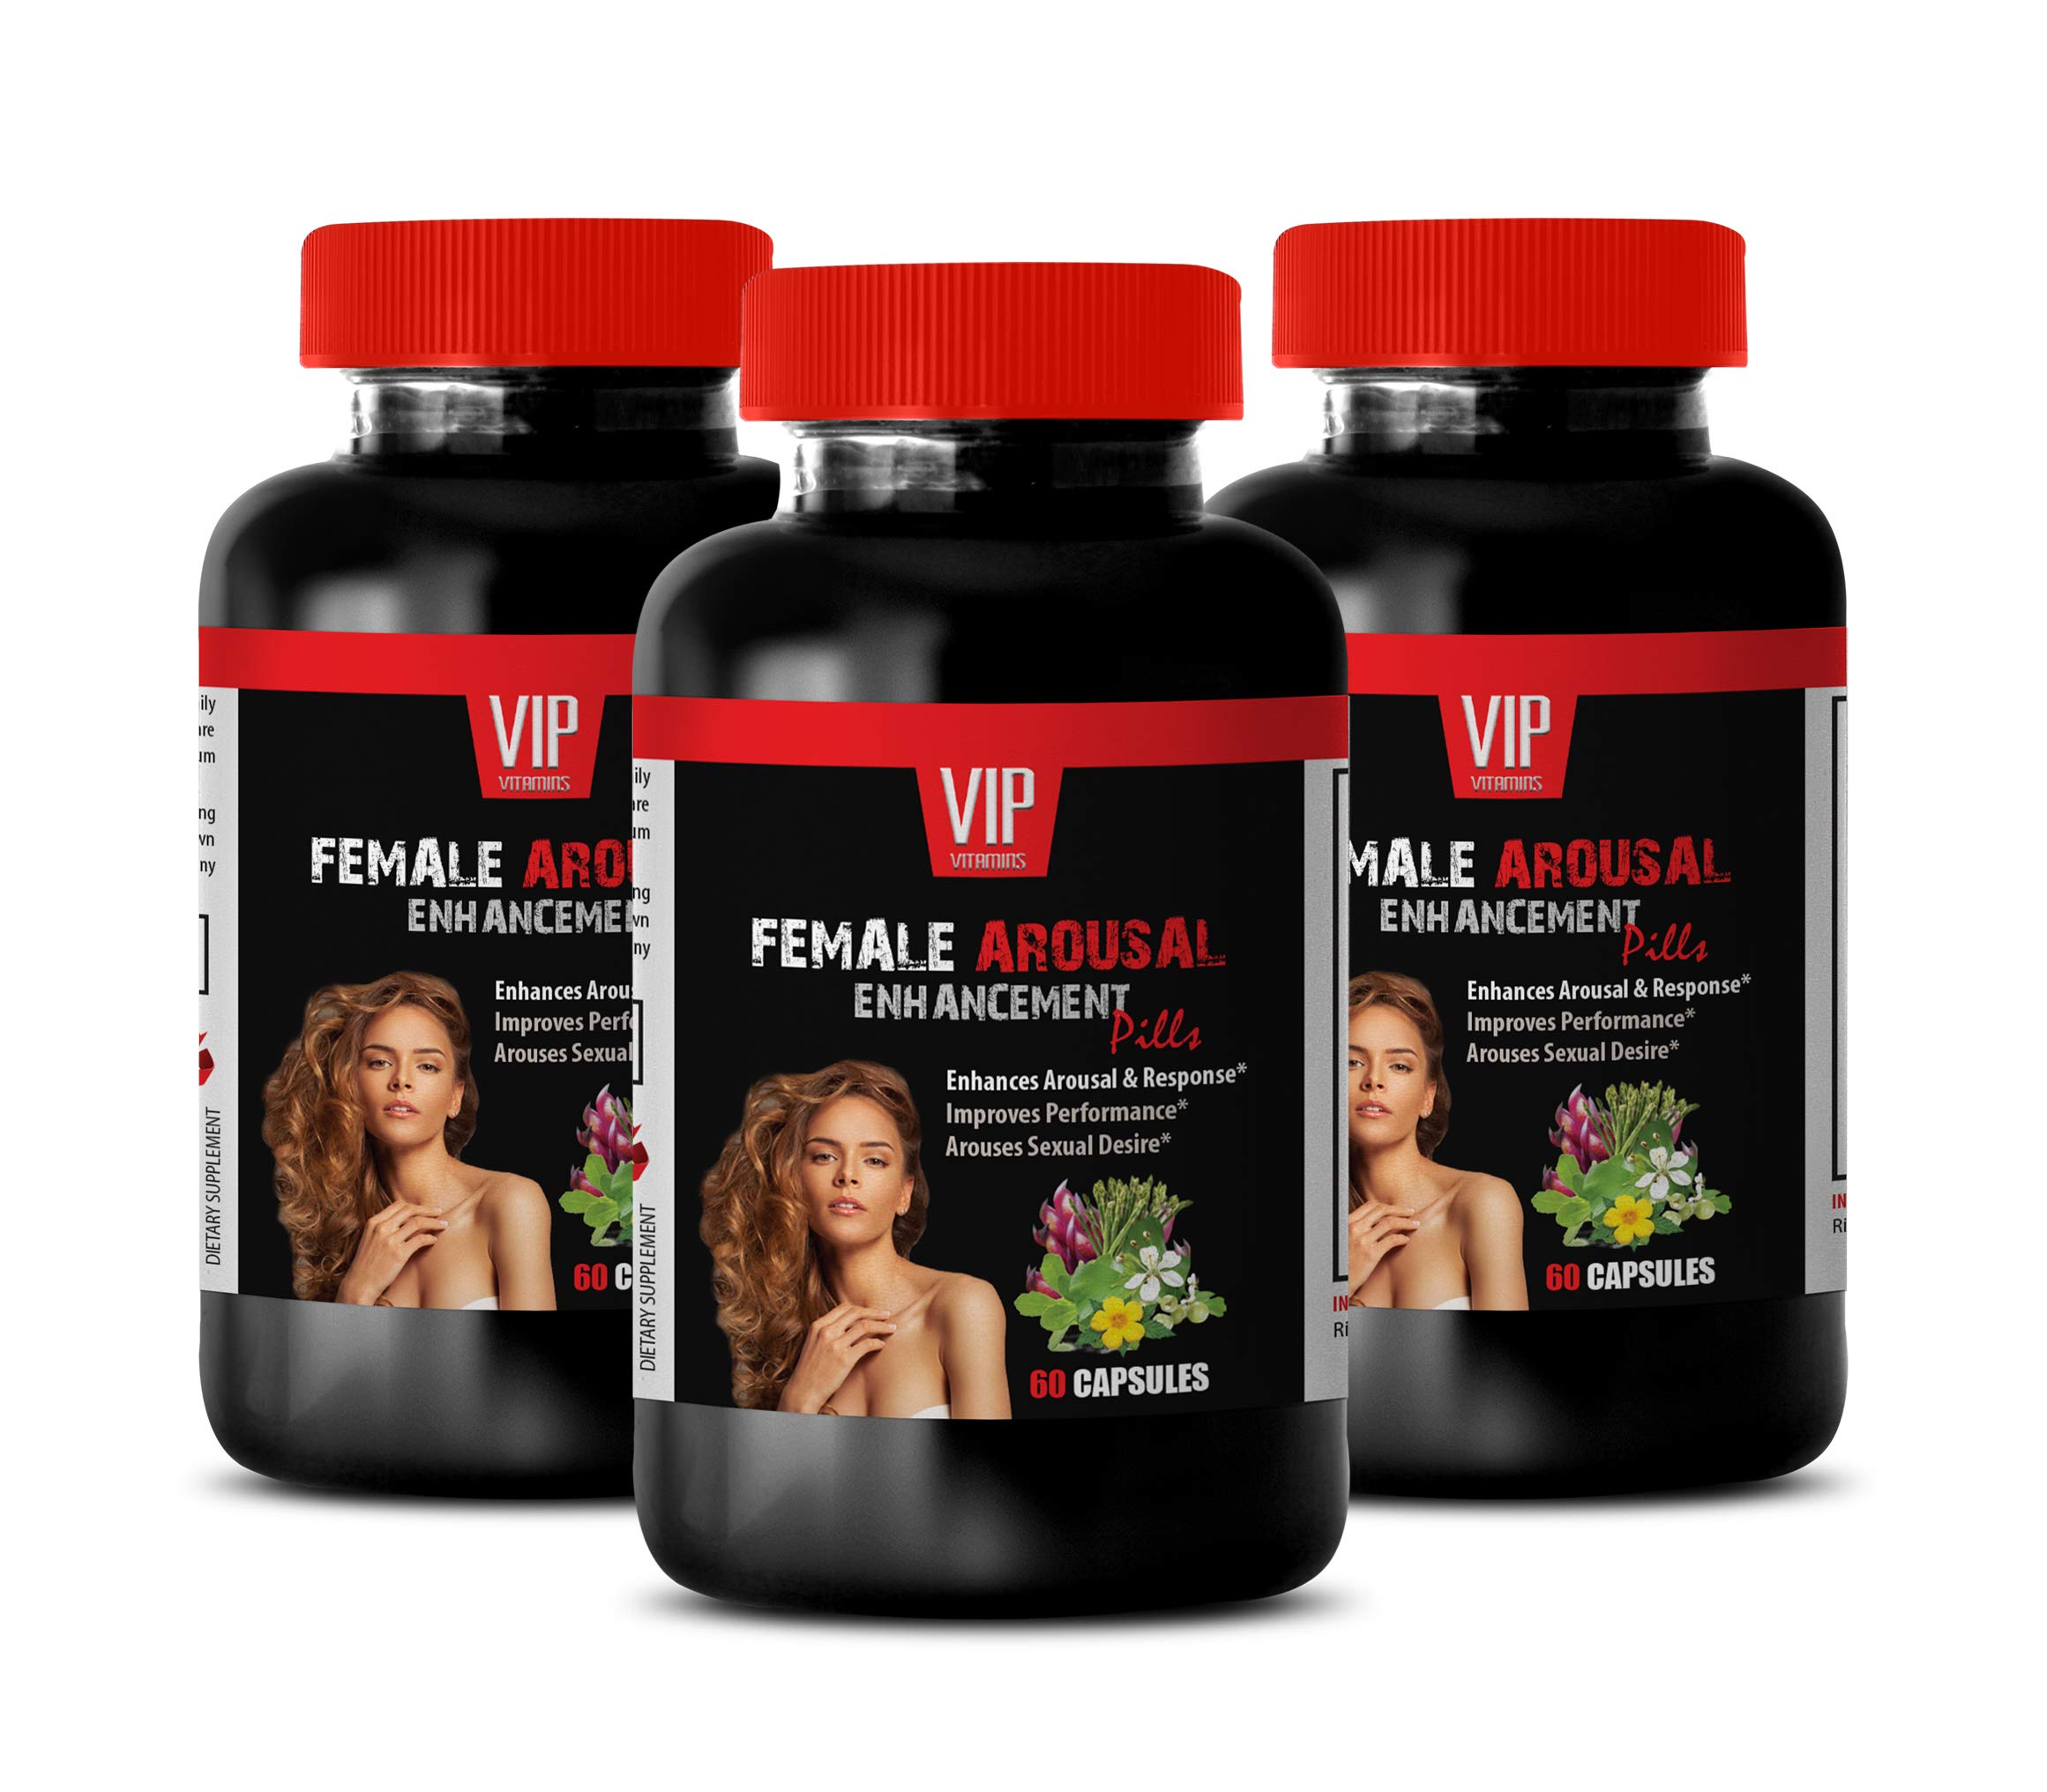 Sexual Enhancement for Women - Female Arousal Enhancement Pills - Dong quai for Fertility - 3 Bottles 180 Capsules